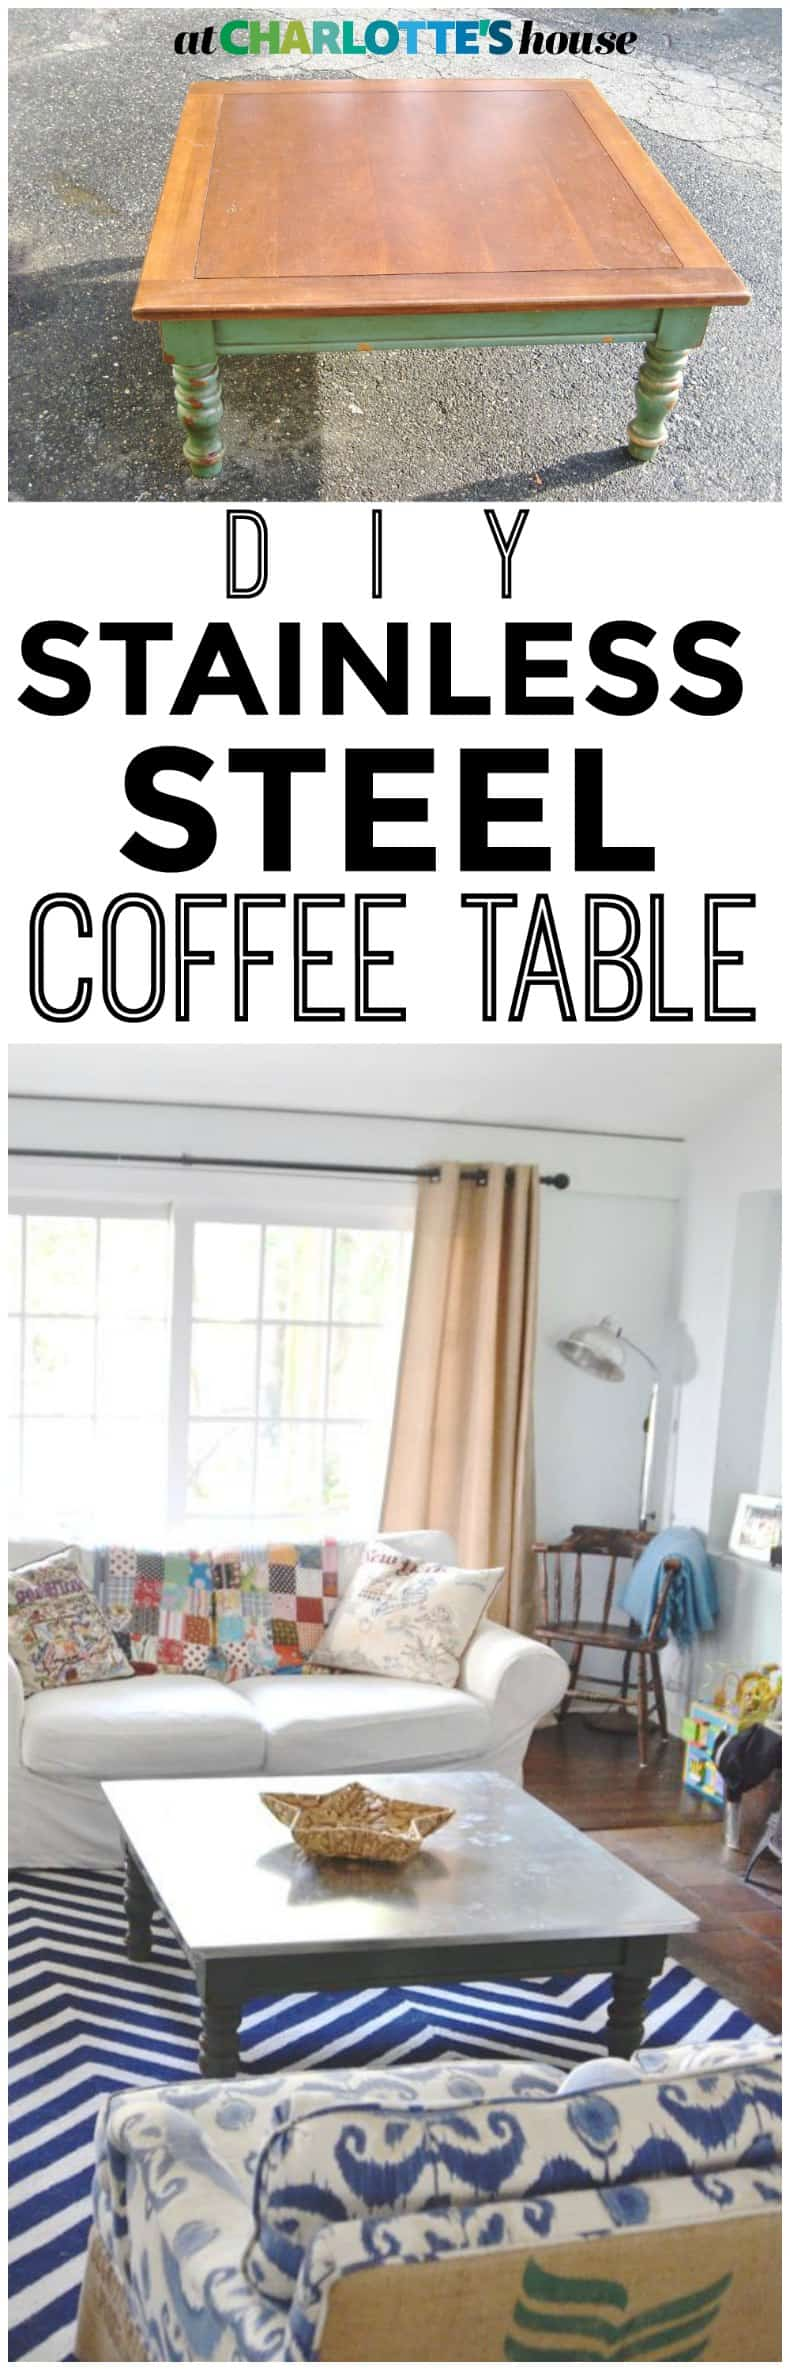 Make any coffee table into this chic and durable stainless steel version for under $50!